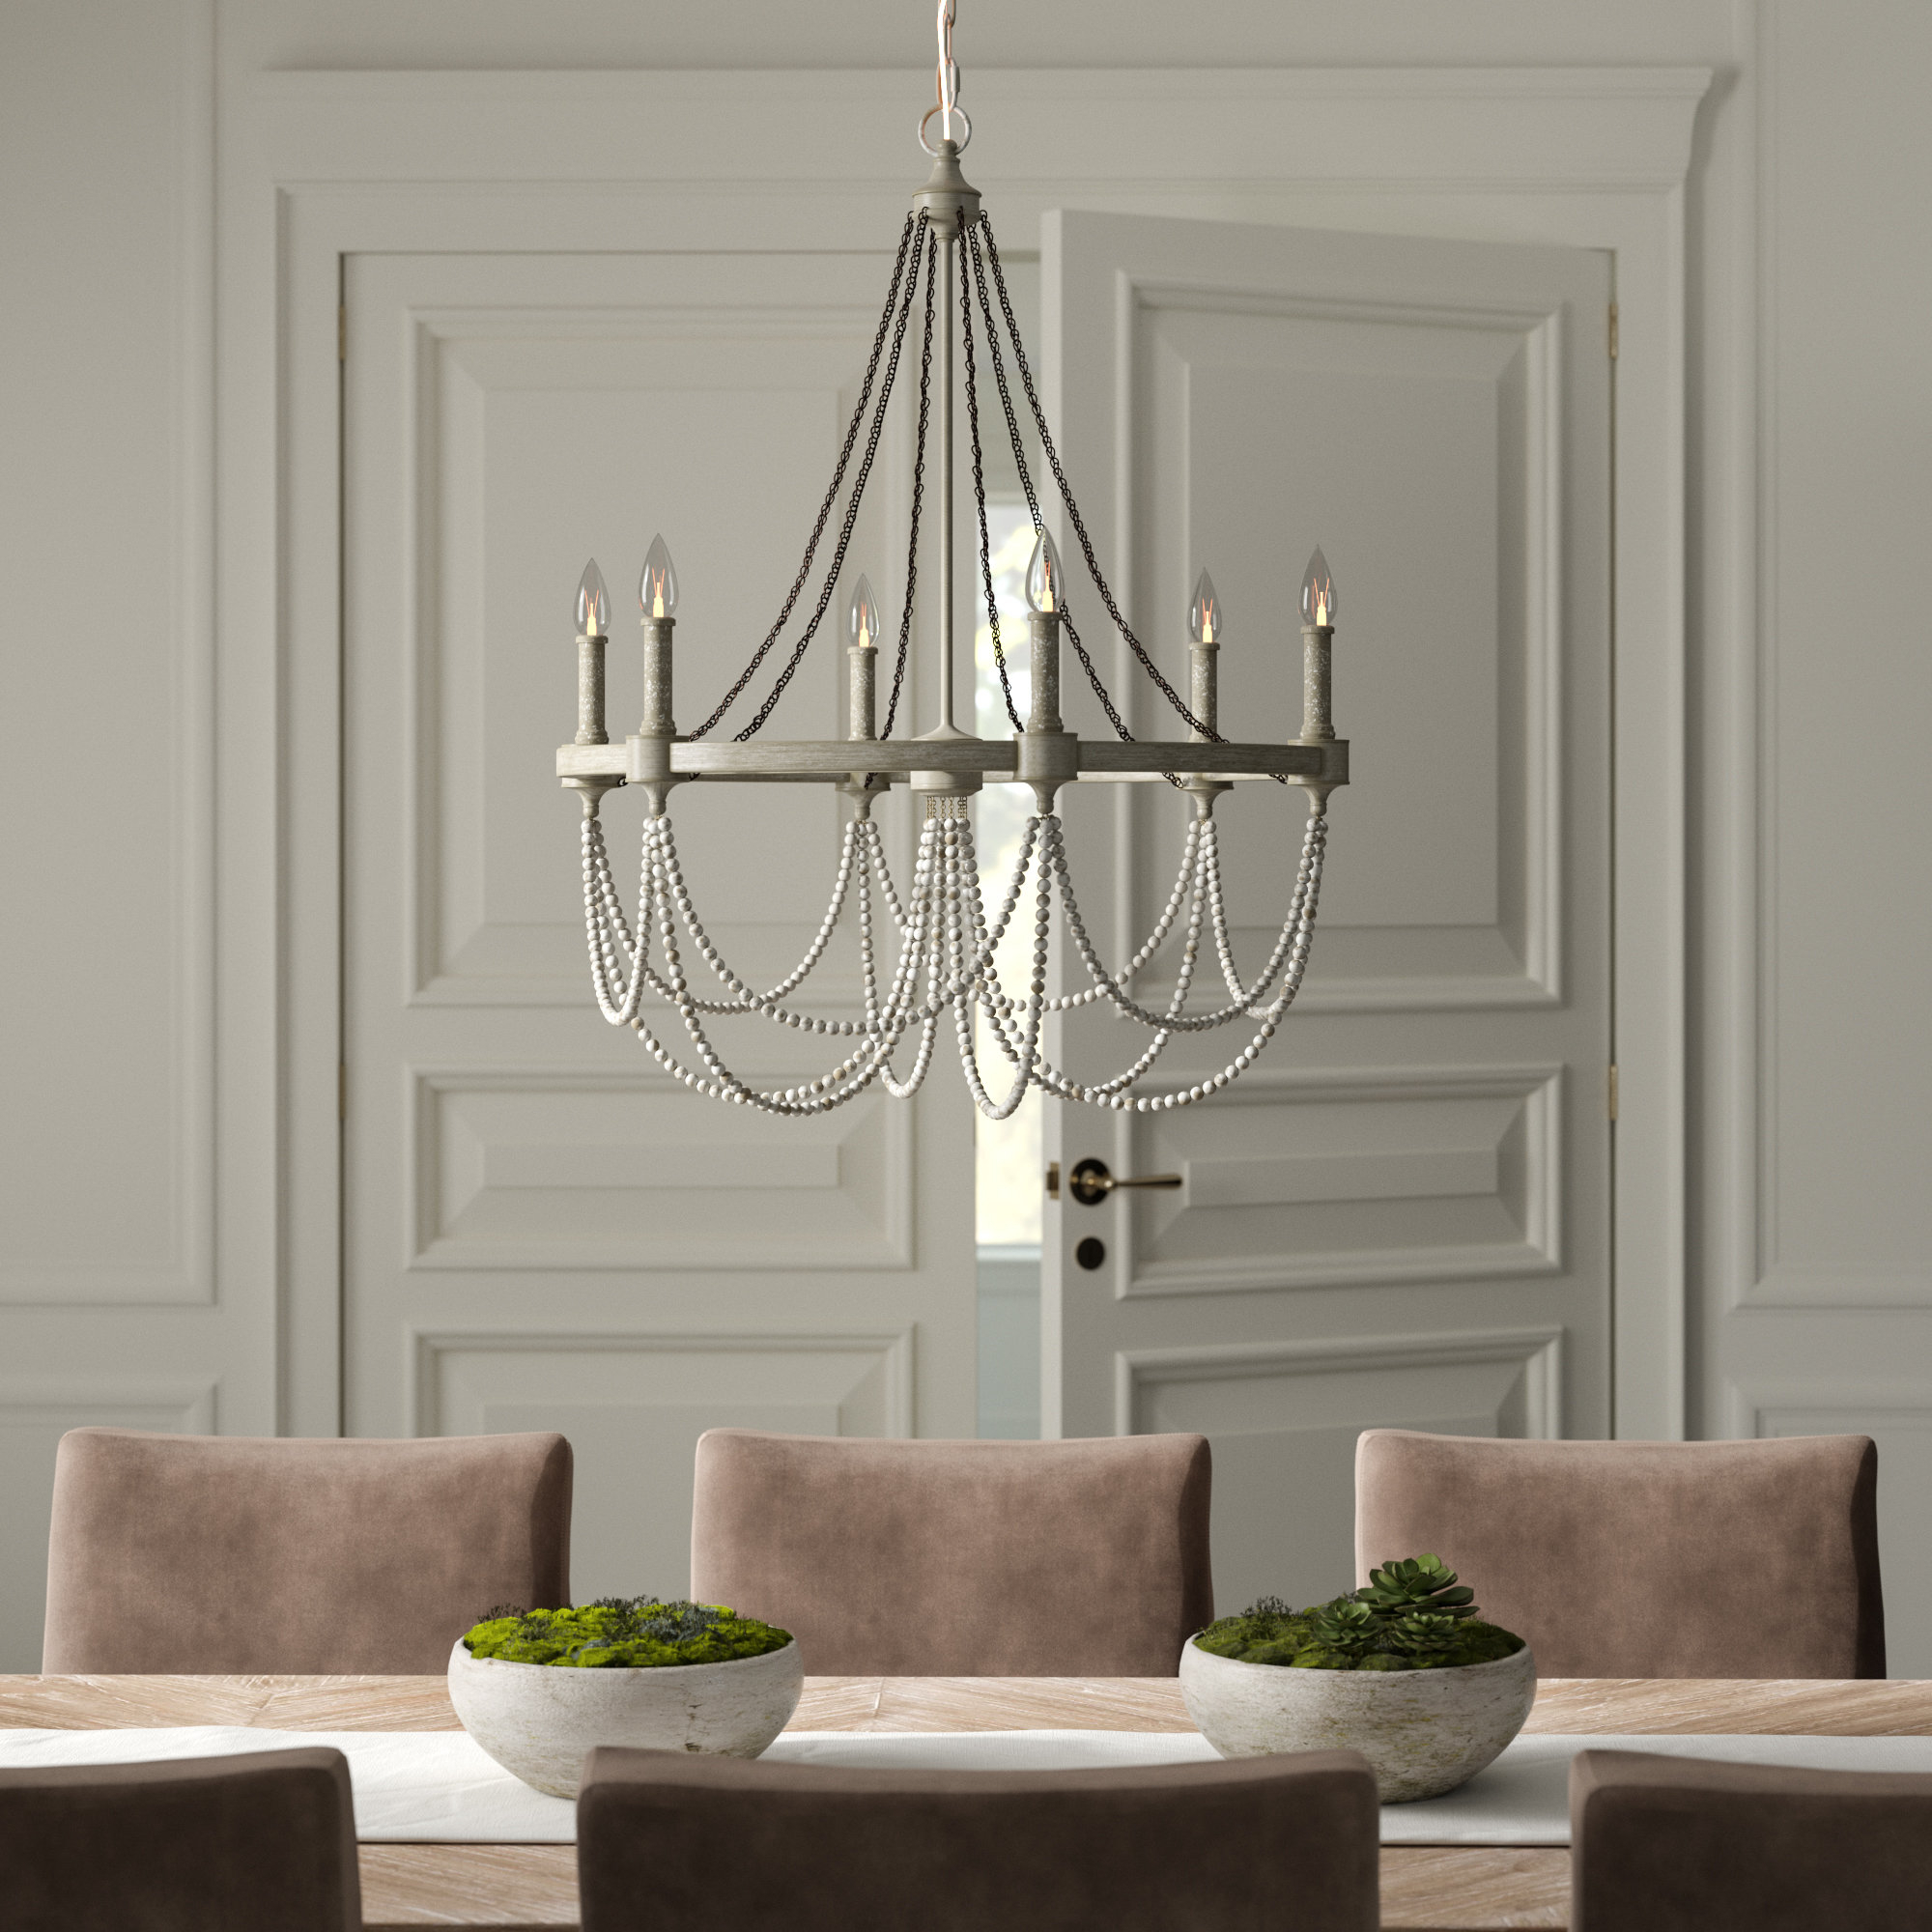 Fitzgibbon 6 Light Candle Style Chandelier For Newest Watford 6 Light Candle Style Chandeliers (Gallery 16 of 20)